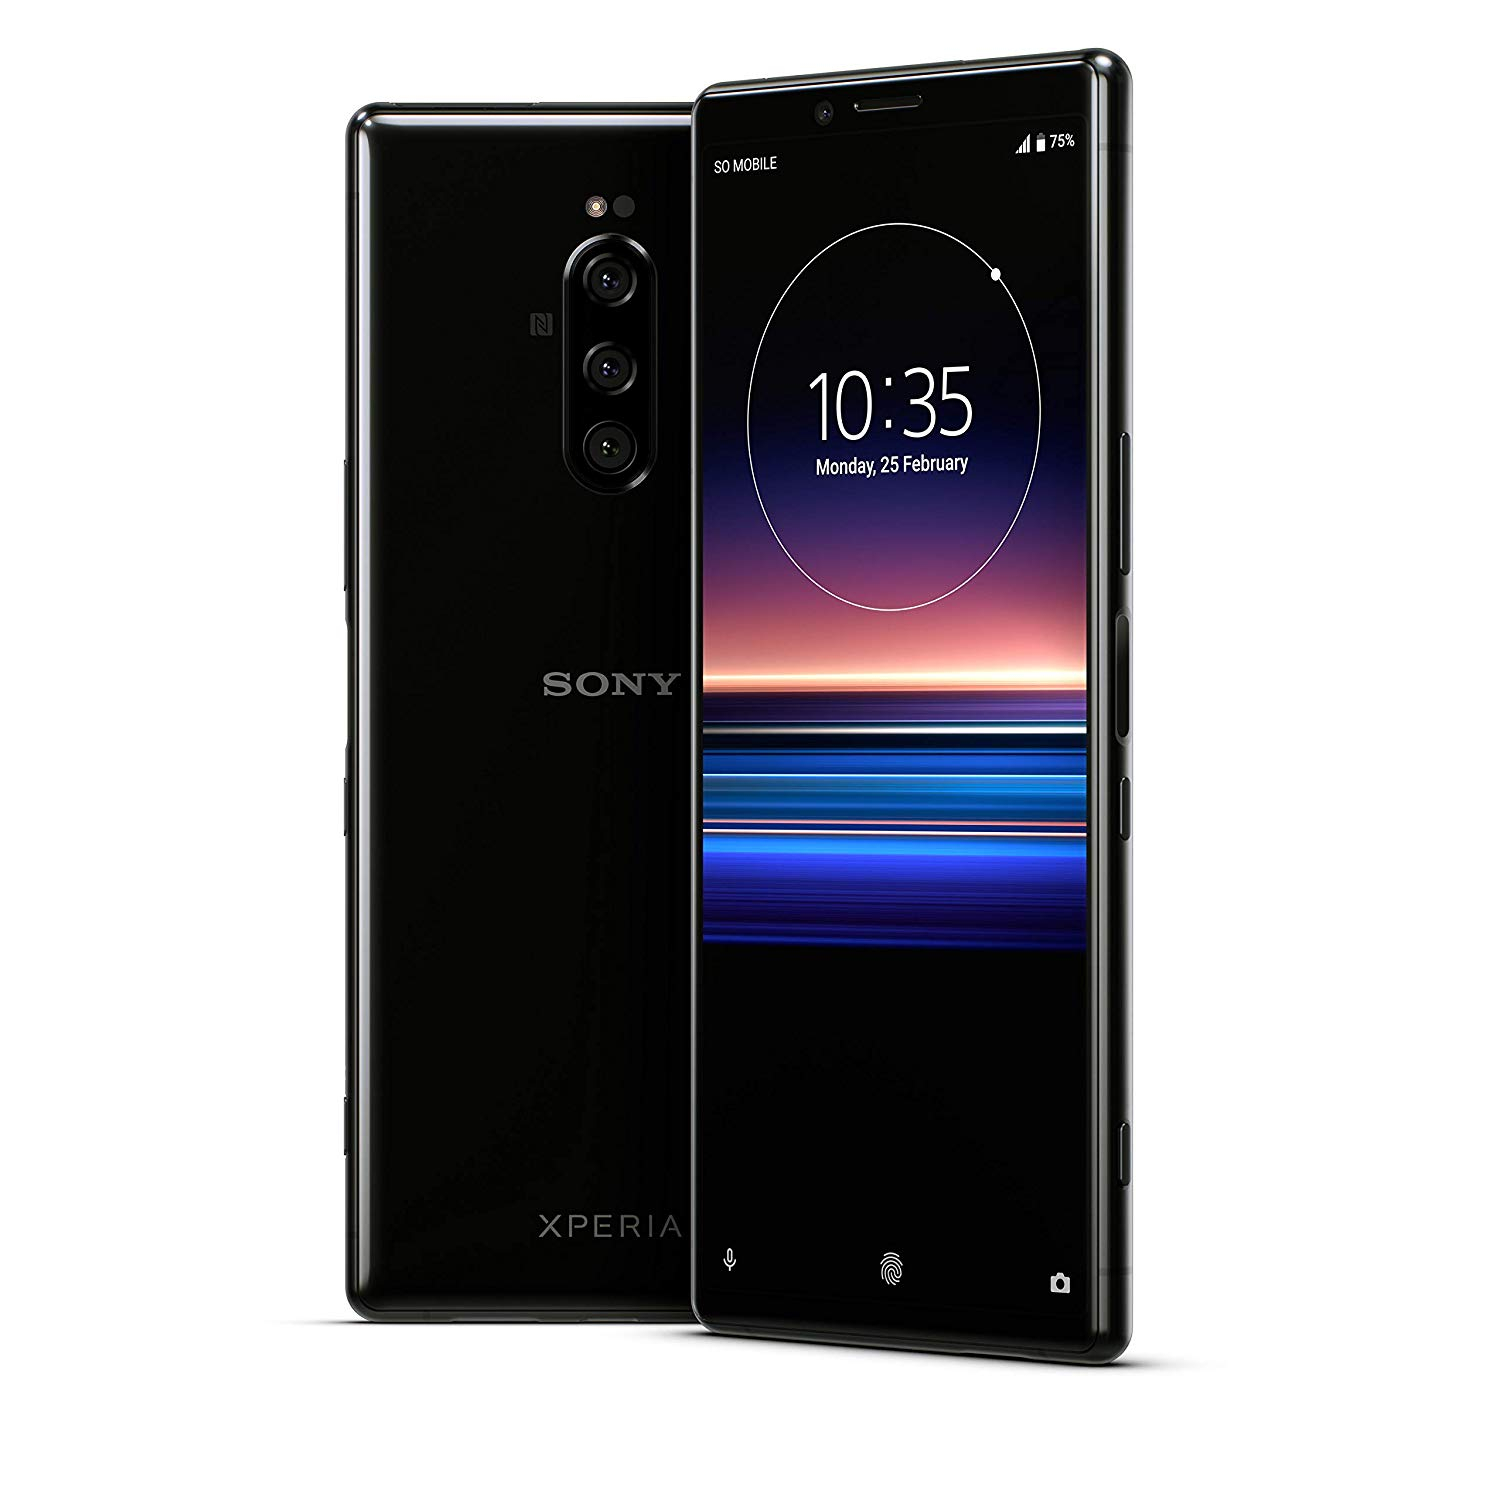 Sony Xperia 1 (J9110), Black Color (Black), 128 GB Of Internal Memory 6 GB RAM, Dual SIM, OLED Display 4K HDR 6.